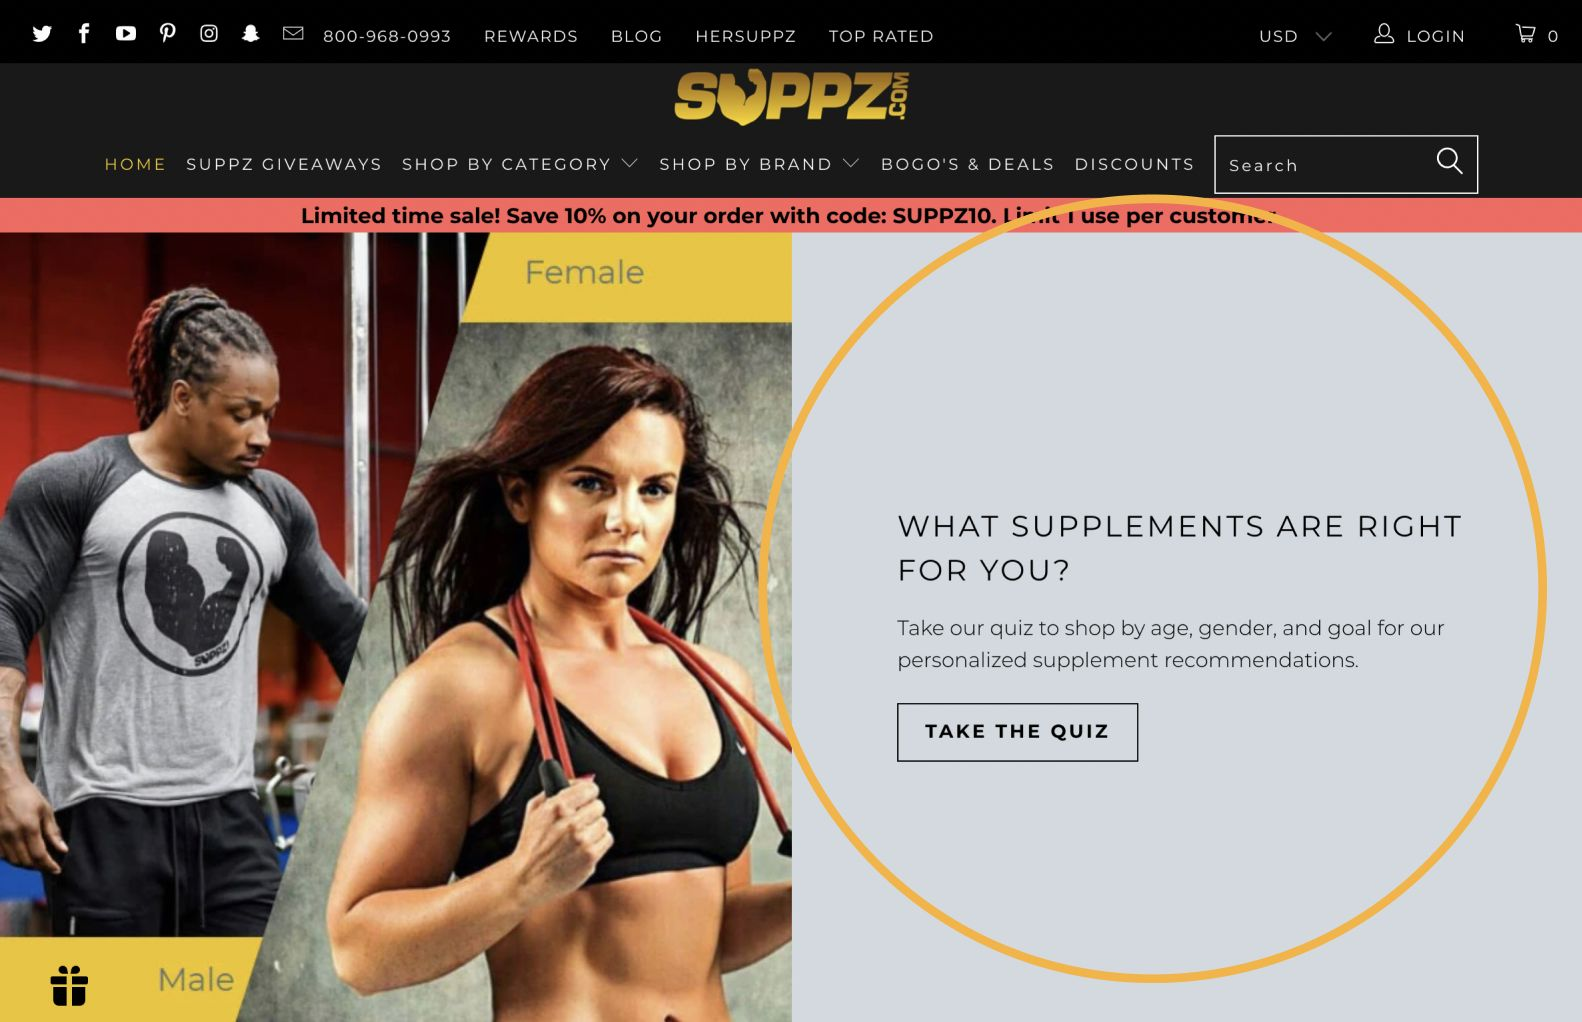 suppz_quizplacement_example